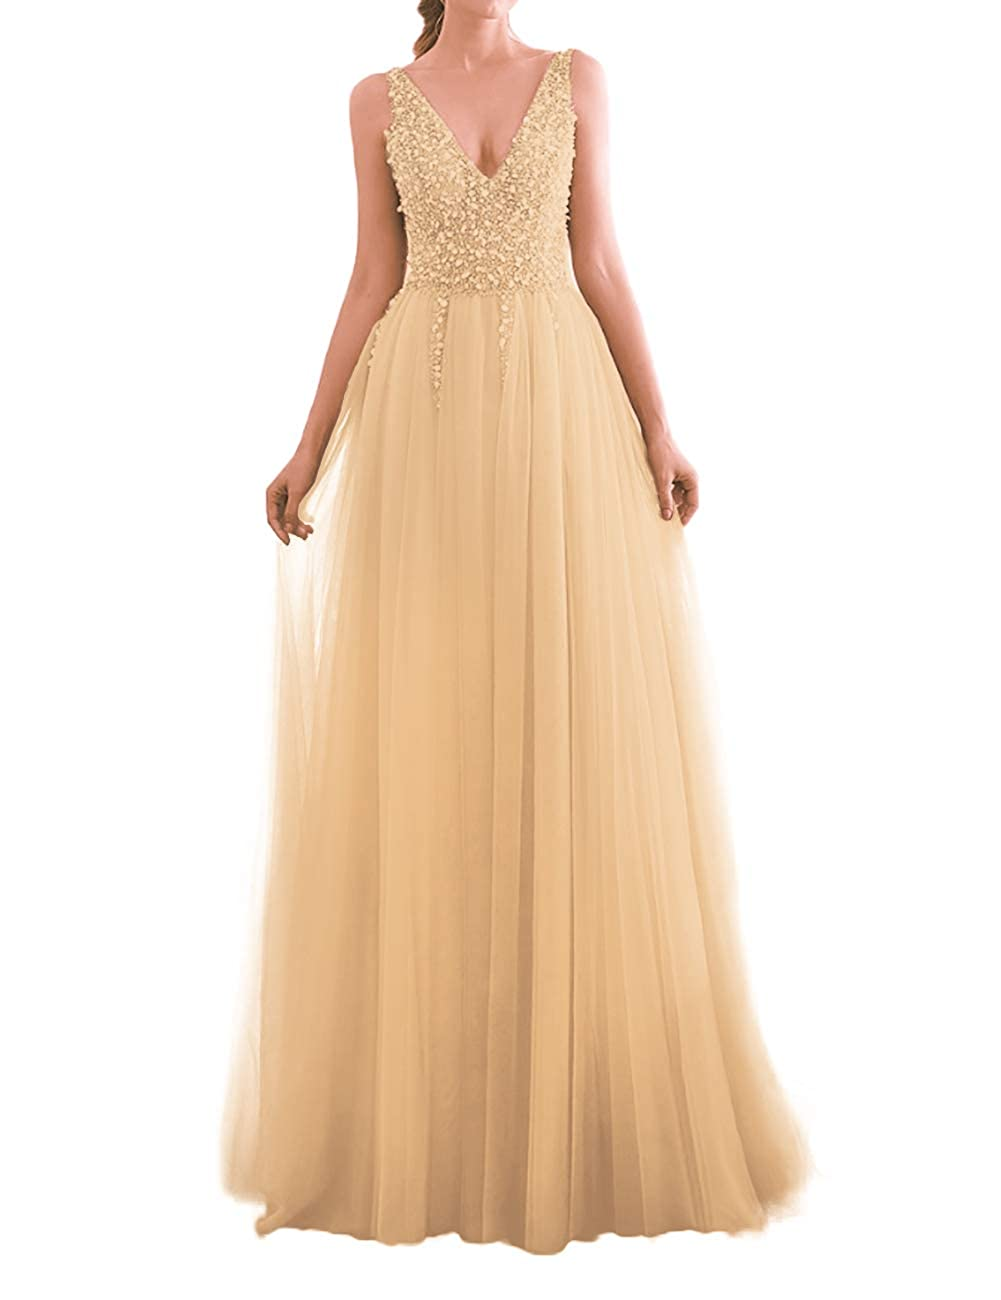 Champagne JAEDEN Prom Dress Long Evening Dresses for Party Tulle V Neck Prom Dresses Evening Gowns